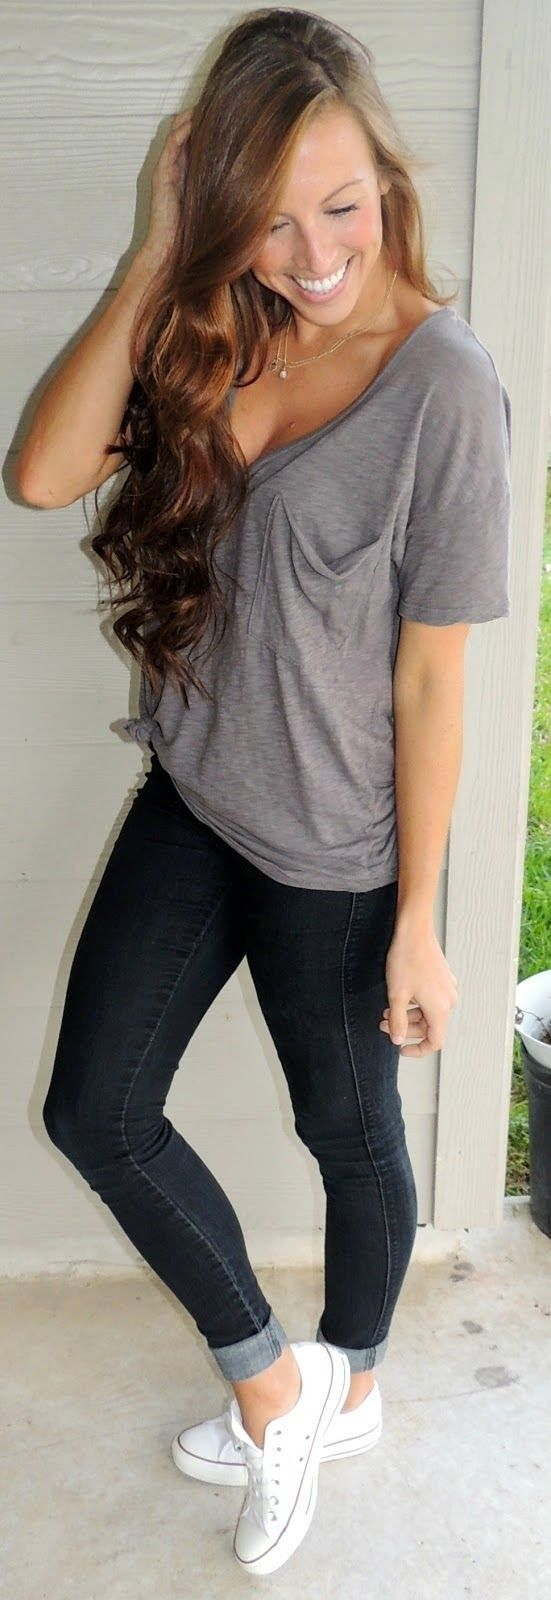 cute outfit with converse classics.